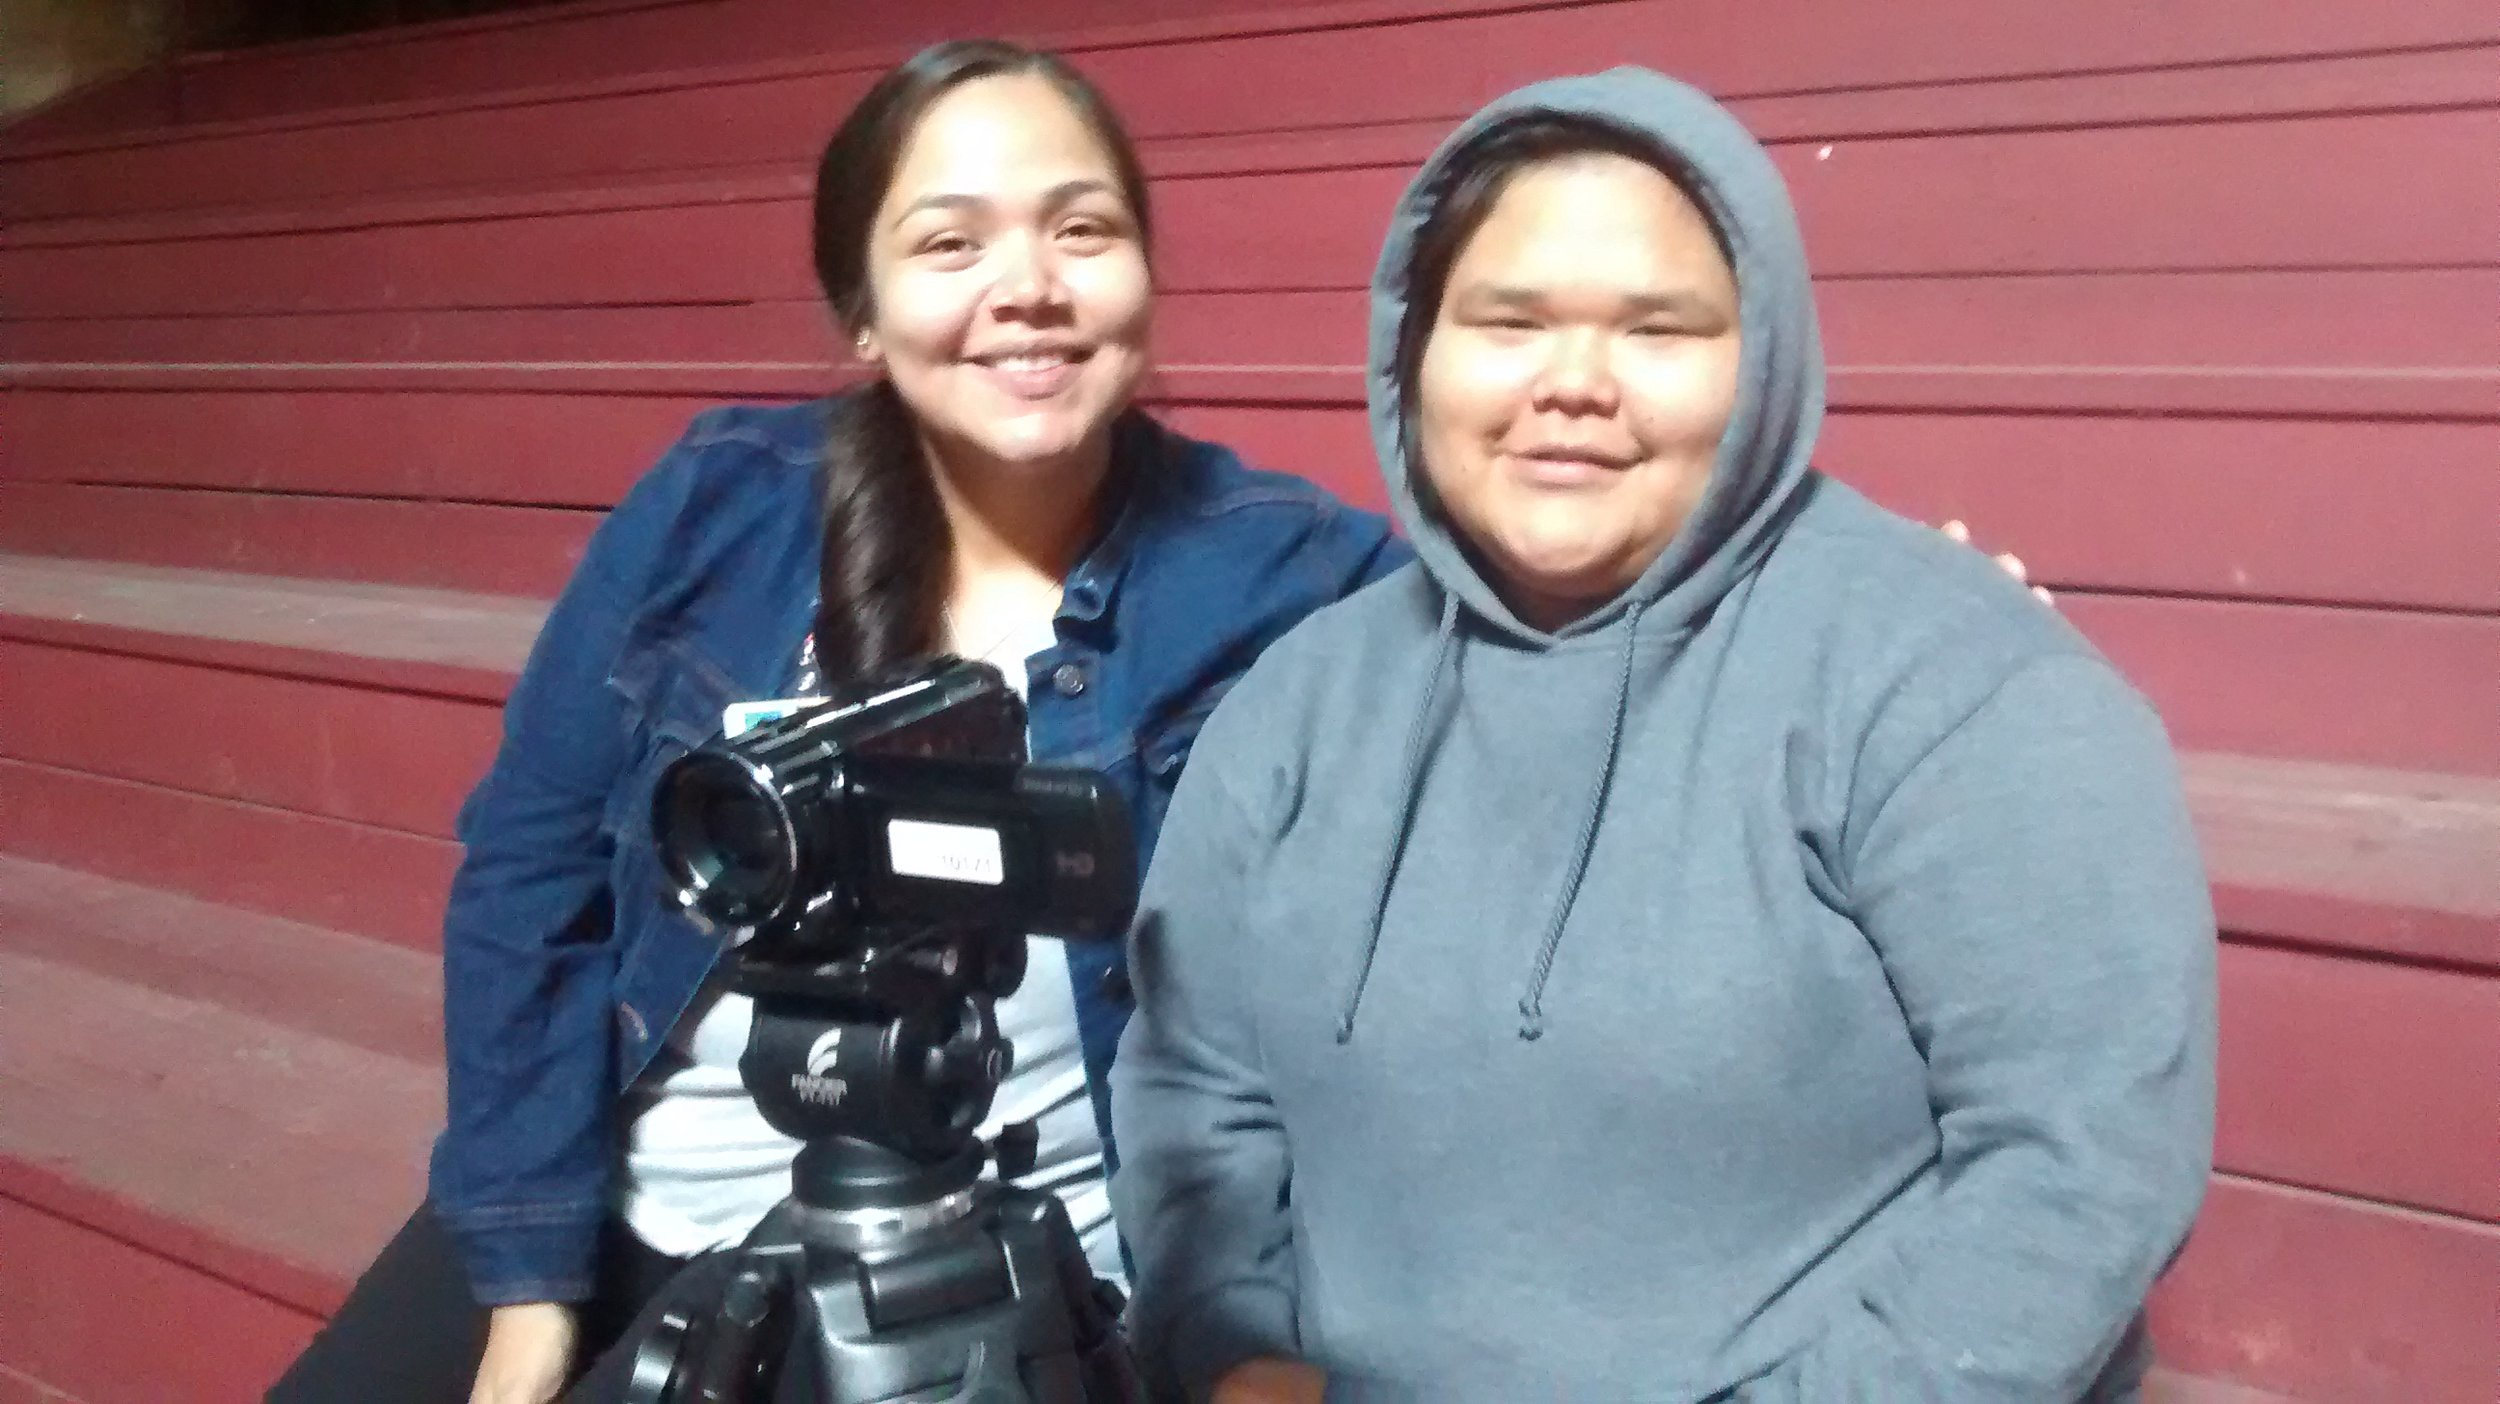 Elecia (student worker) and Haley (student filmmaker) at the practice potlatch!